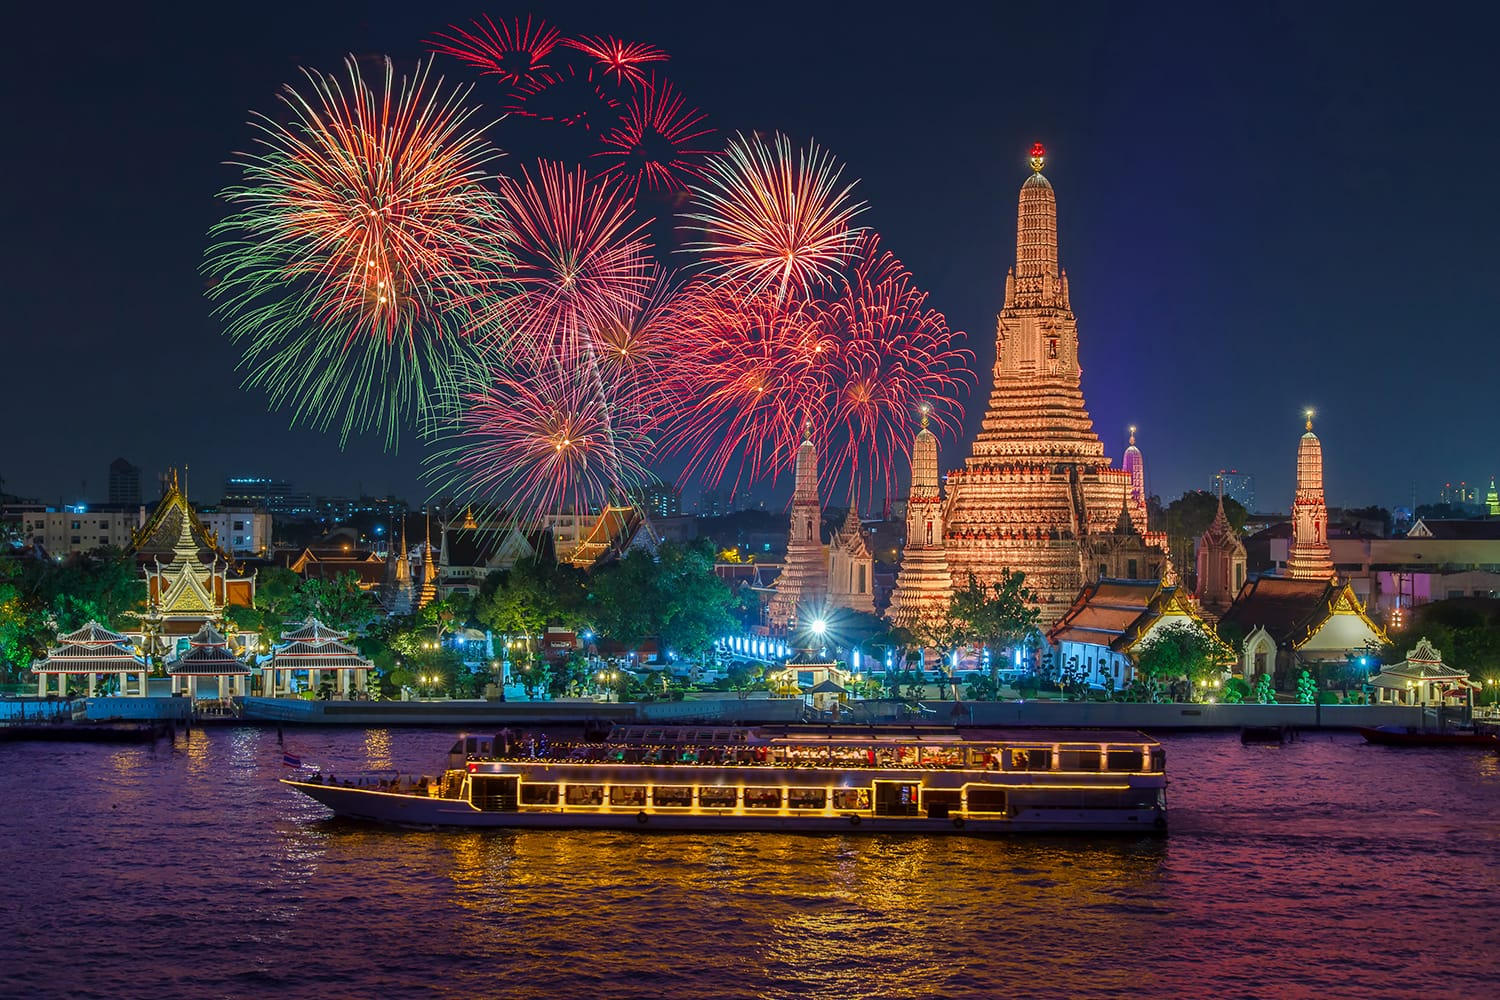 Fireworks on New Years Eve in front of Wat Arun in Bangkok, Thailand